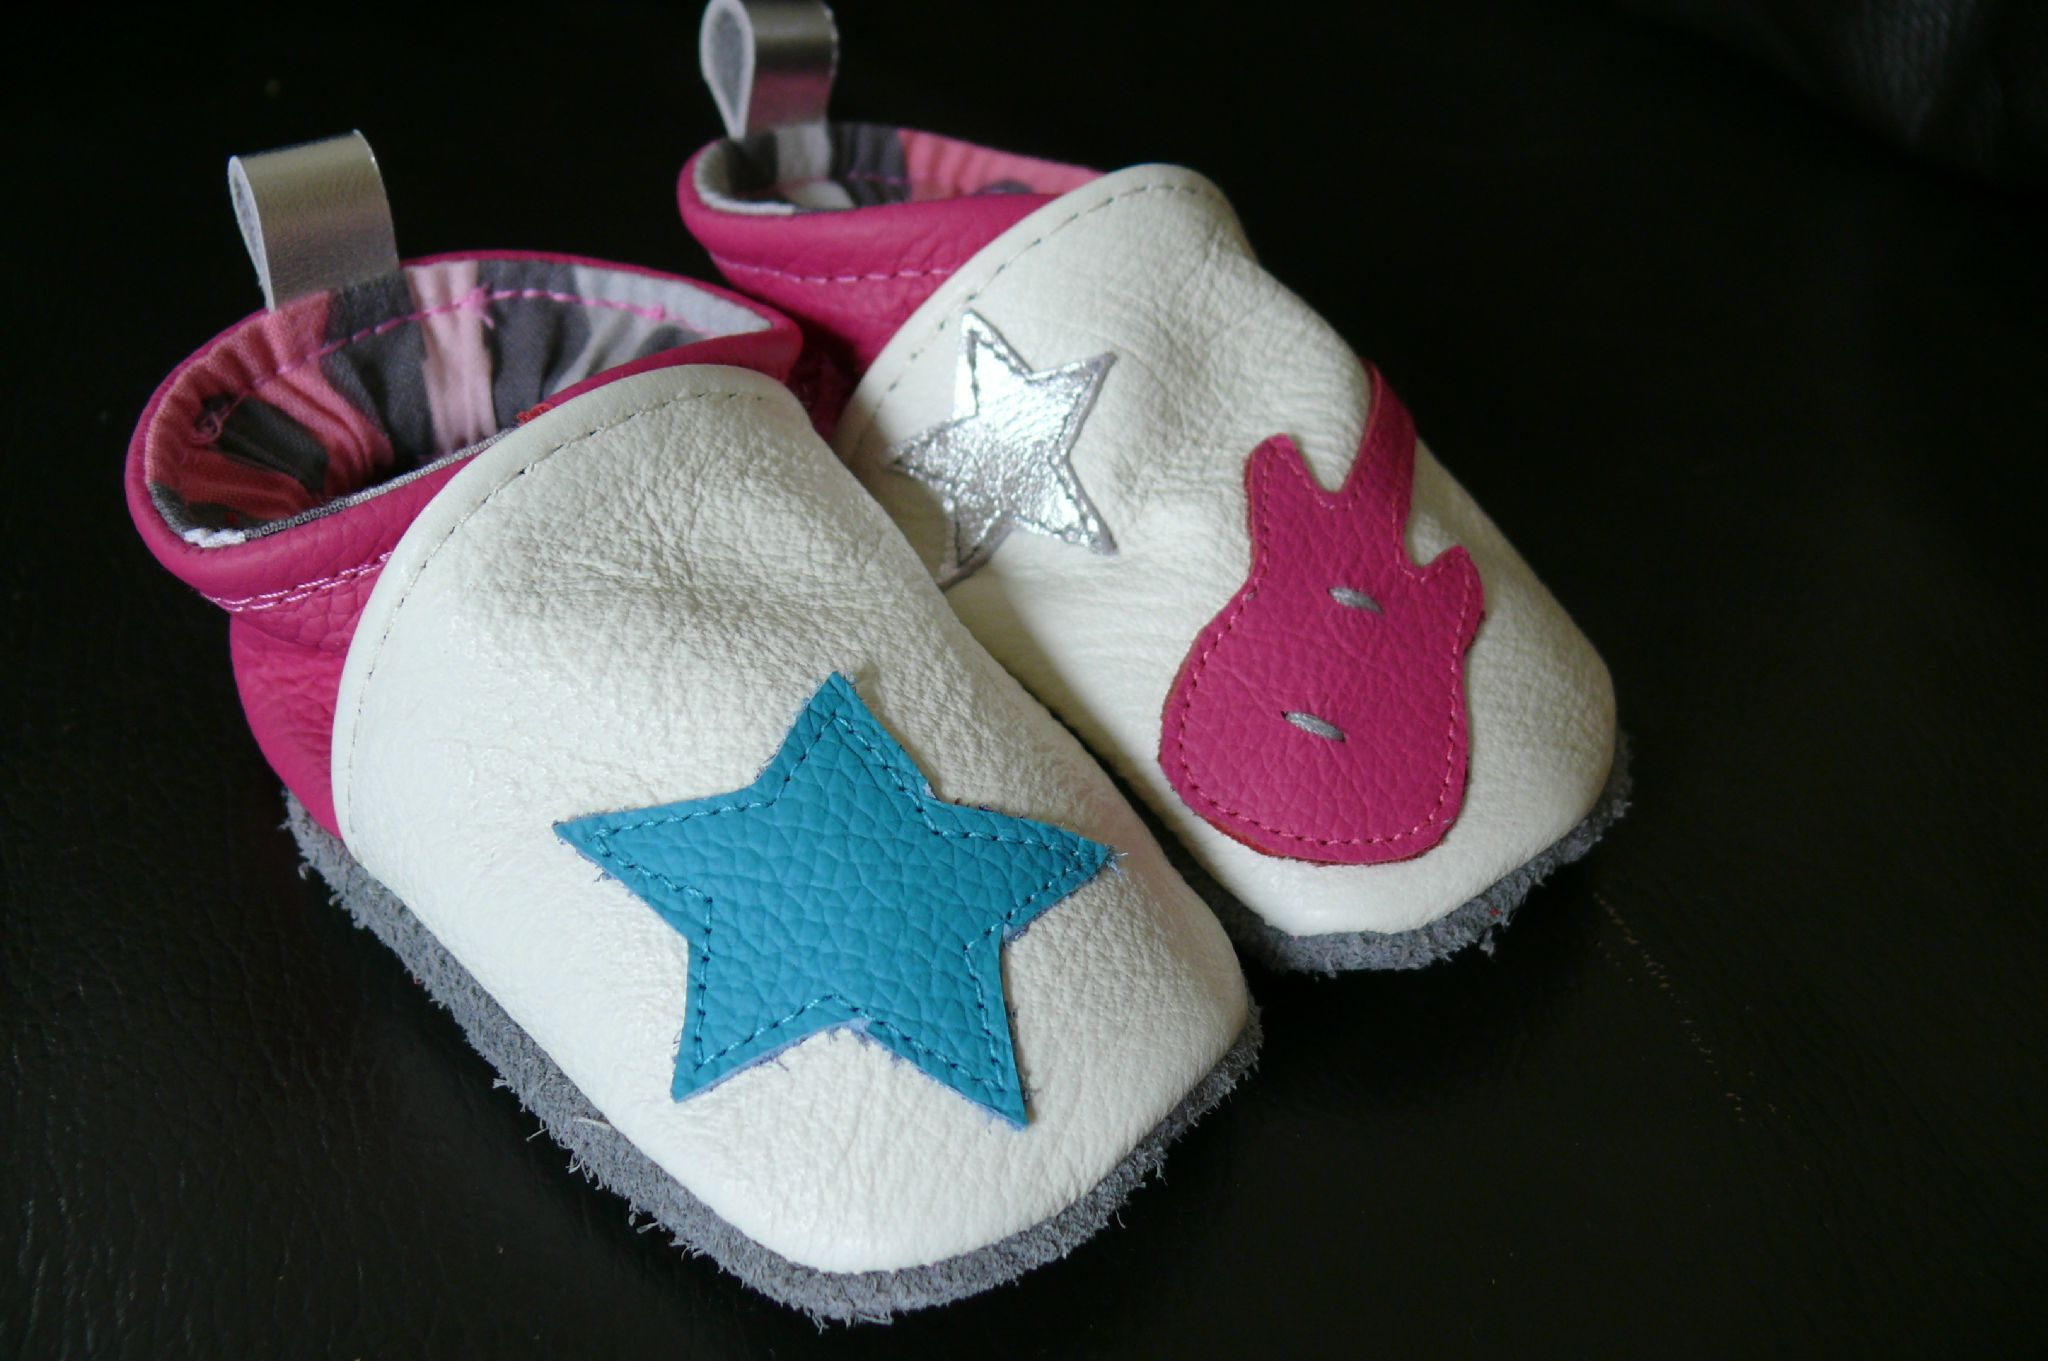 chaussons cuir